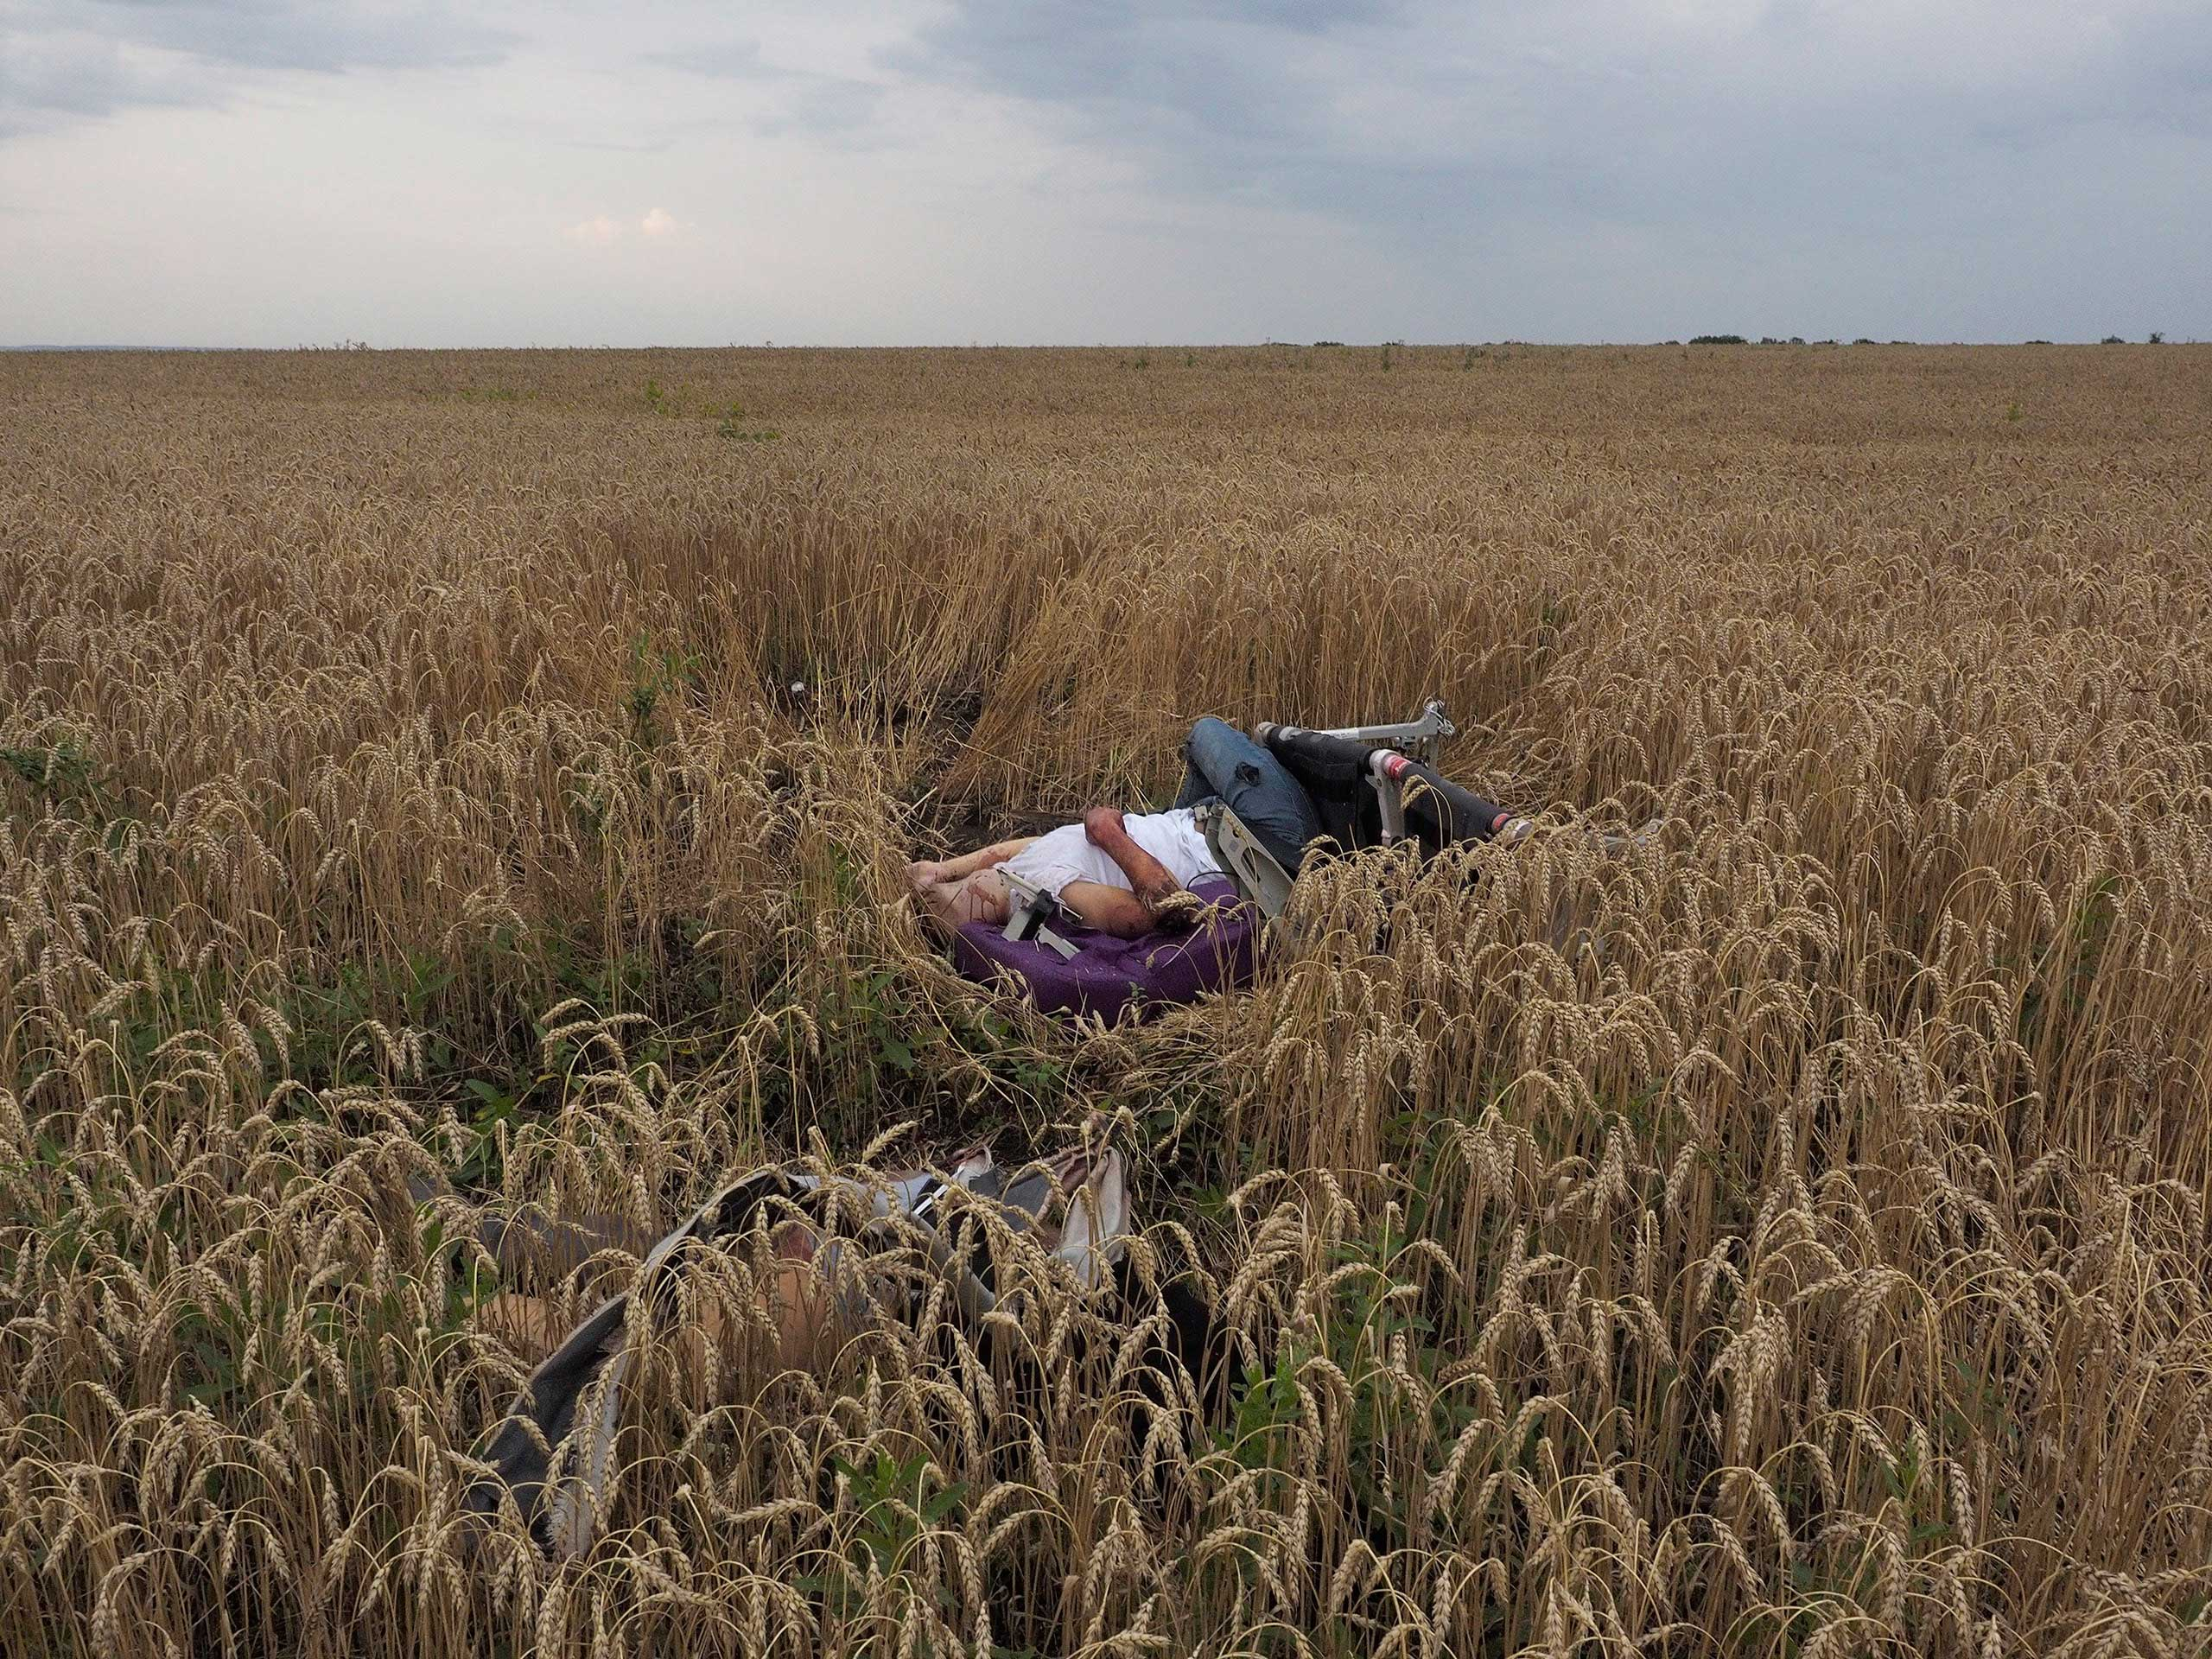 """Jerome Sessini. Torez, Ukraine. July 17, 2014: """"We were in Donetsk when we got word that a military plane had come down,"""" says Magnum photographer Jerome Sessini. """"As we made our way there, we heard it was, in fact, a passenger plane. When we arrived, I could see the burning wreckage along the small roads. And the scene [revealed] itself to me: There were bodies strewn everywhere, and bits of plane scattered – it was a horrific scene.                                                               """"There were separatists guarding the place. I saw one woman in part of the wreckage and she looked like she was just asleep. Her body was intact. At one point, near some fields, I noticed this purple color on the edge of my sight and we walked in and found this body. He was still strapped into his seat and the scene looked totally unreal. It was pretty scary, actually. I only took a few frames. I didn't want to go any closer. What you see here is as close as I got.                                                               """"One security guard asked me to hand over my memory card. I had to – and I think this photo was on it. But when he was leaving, I stood in the middle of the road and blocked the car as they left. He gave the card back to me, and even apologized for taking it.                                                               I was there with two other photographers and on the way back in the car we didn't talk. It was such a hard scene to process. It was hard to take it in. Nothing can prepare you for a scene like that. It is one of the most violent I have seen."""""""